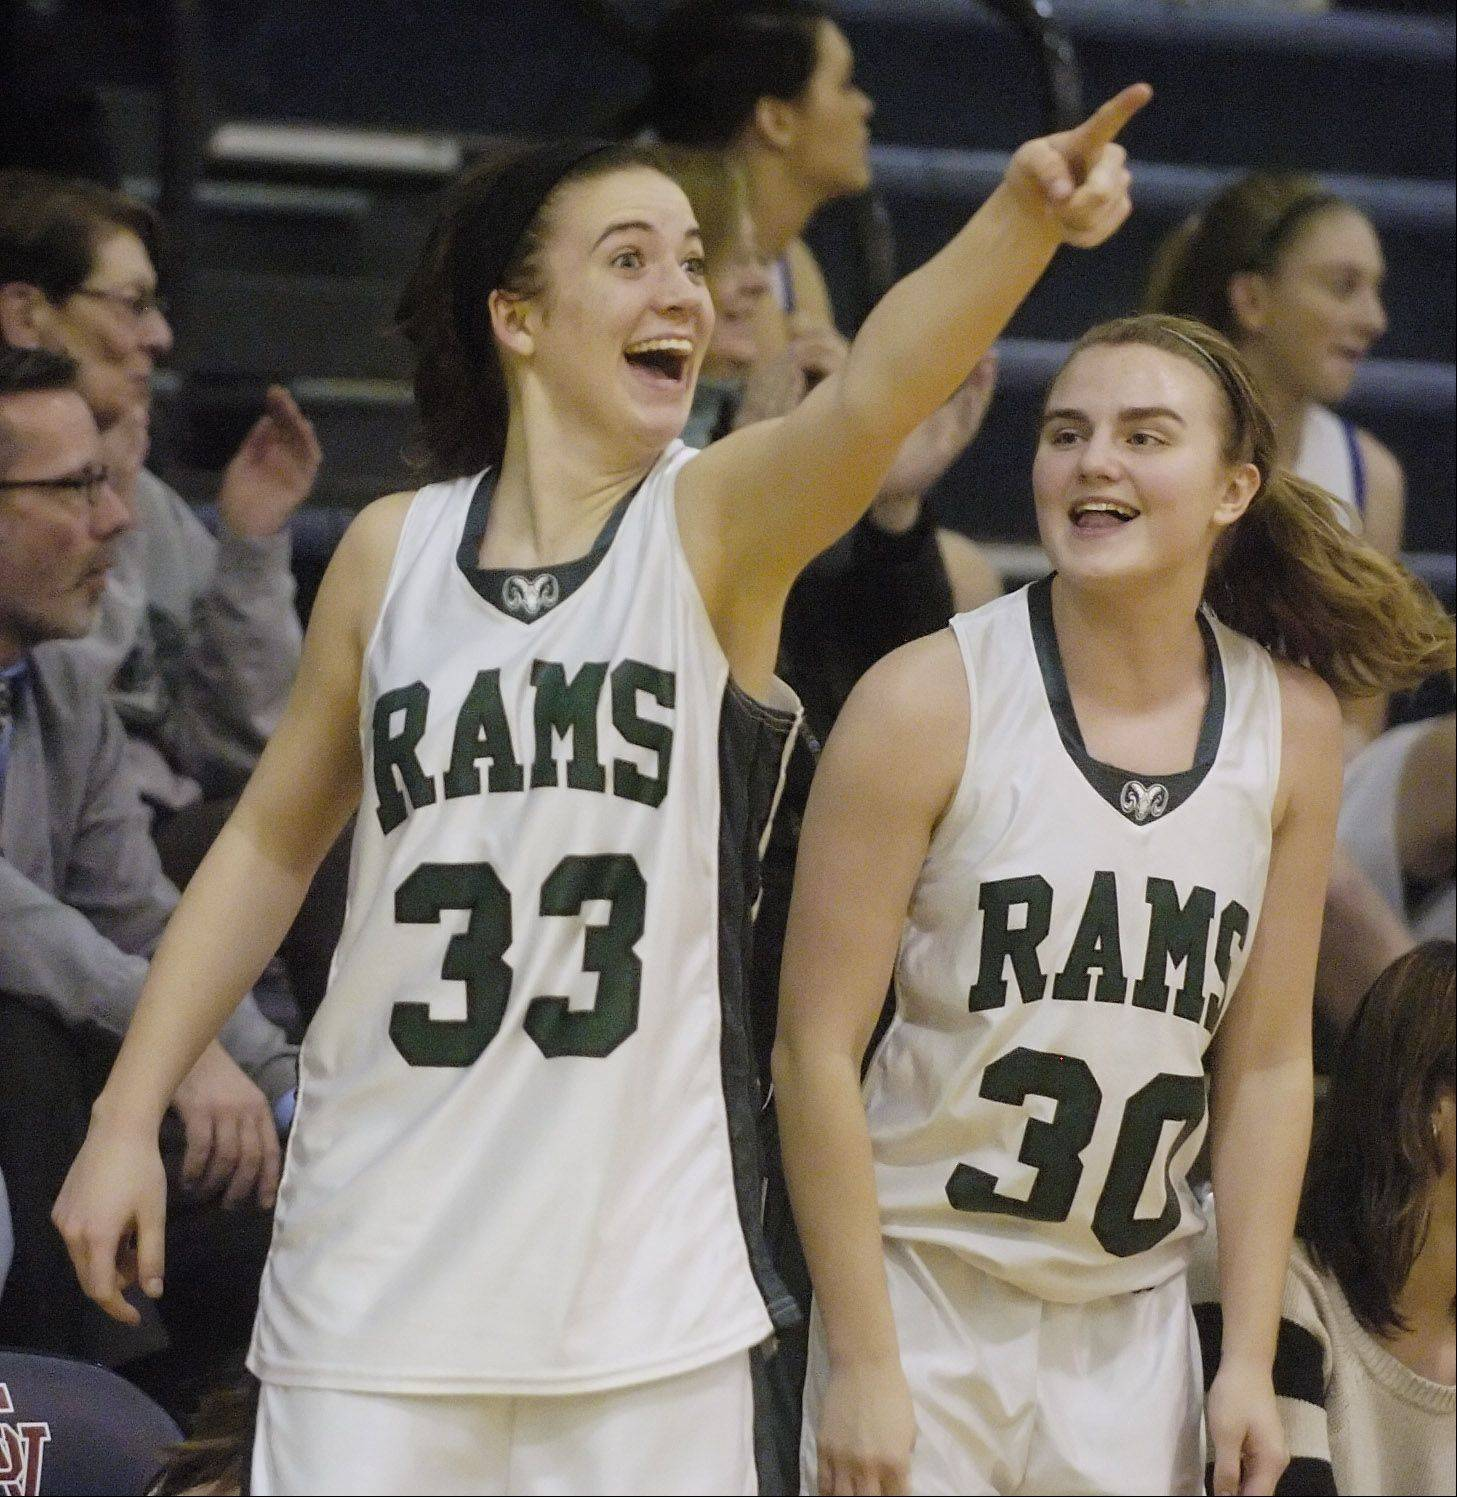 Grayslake Central's Skyler Jessop, left, and Michelle Lettenmair celebrate from the bench during Tuesday's Class 3A girls basketball sectional semifinal against Grayslake North at St. Viator High School in Arlington Heights.